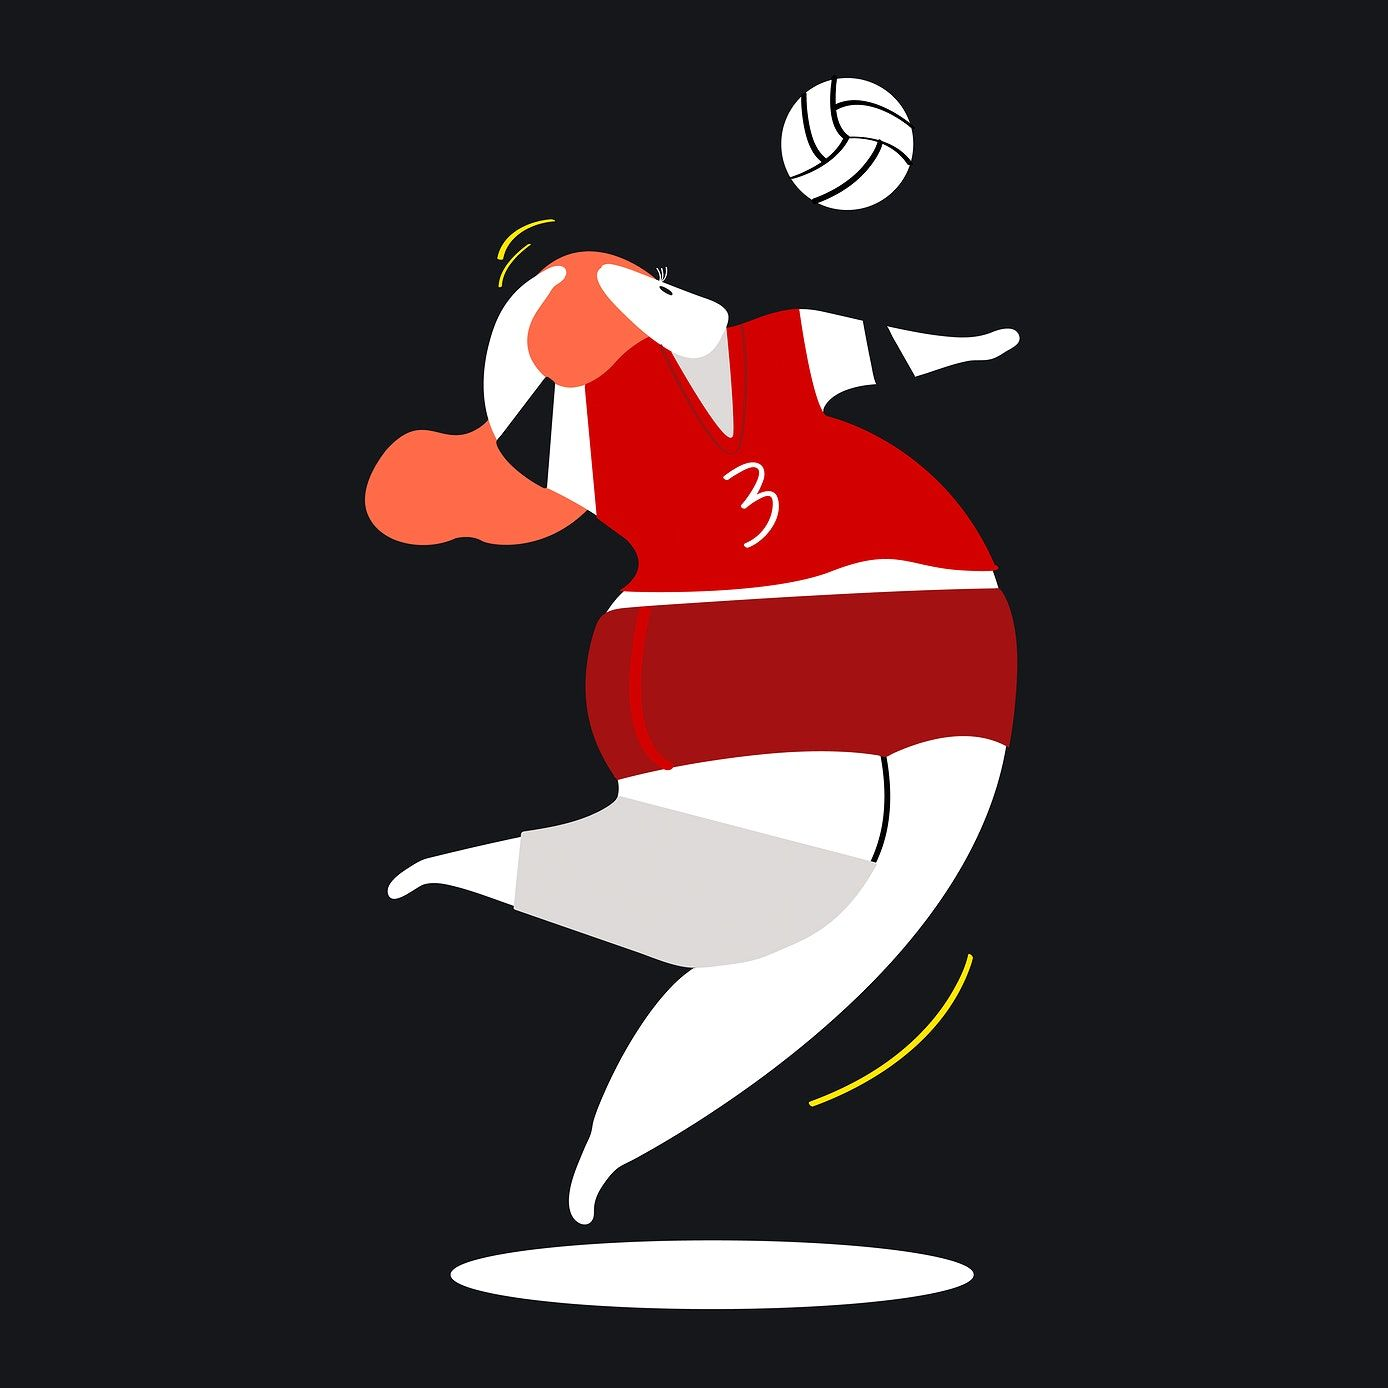 Character Illustration Of A Volleyball Player Free Image By Rawpixel Com